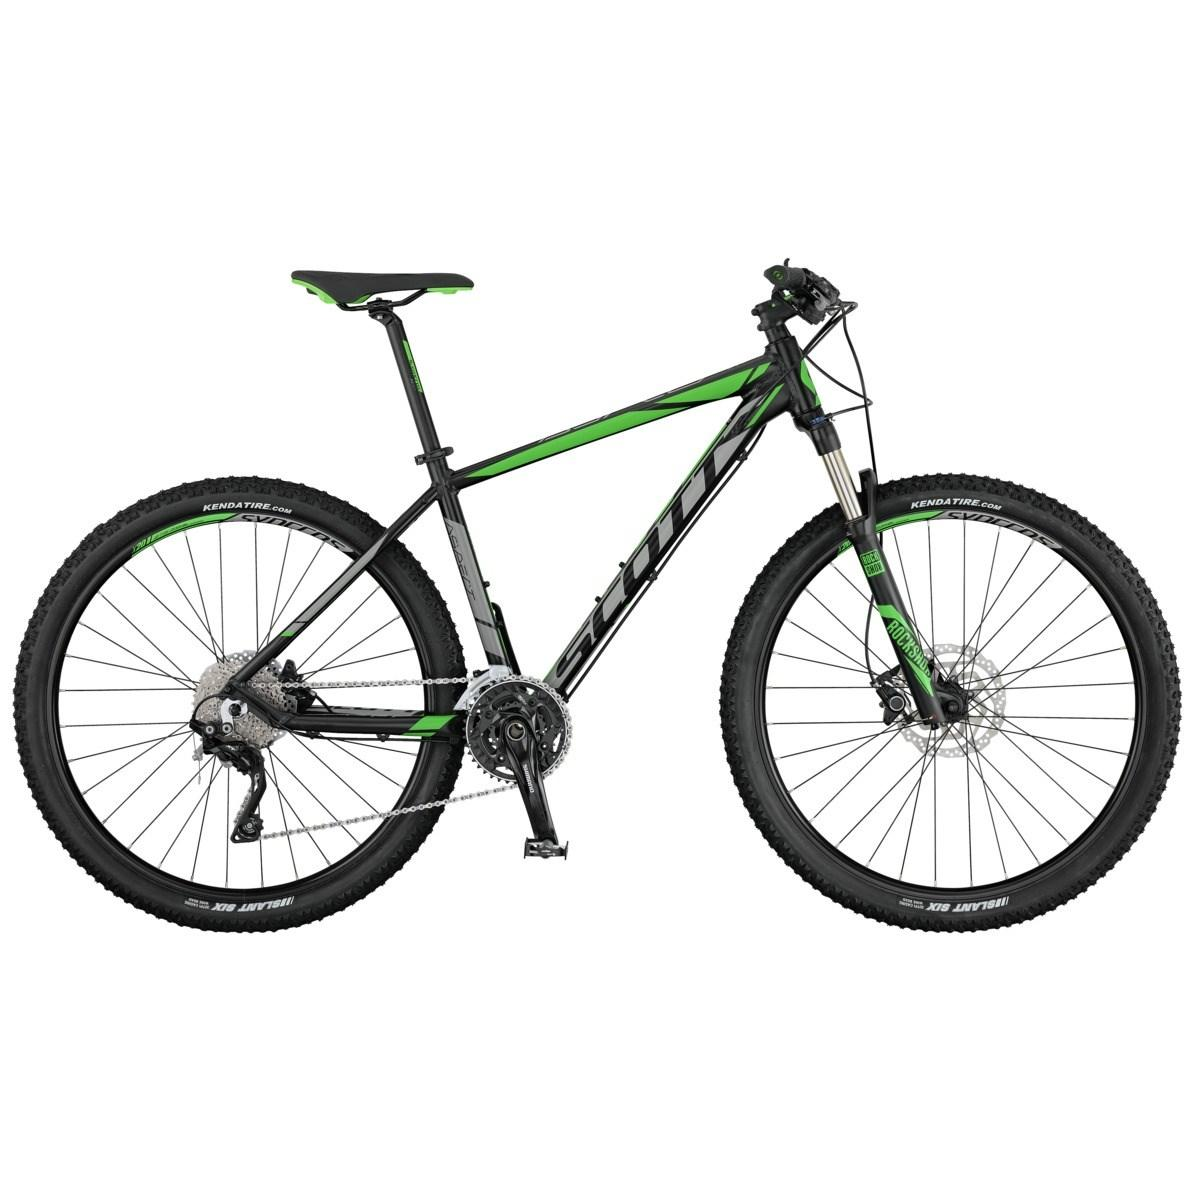 SCOTT Aspect 910 black/grey/green